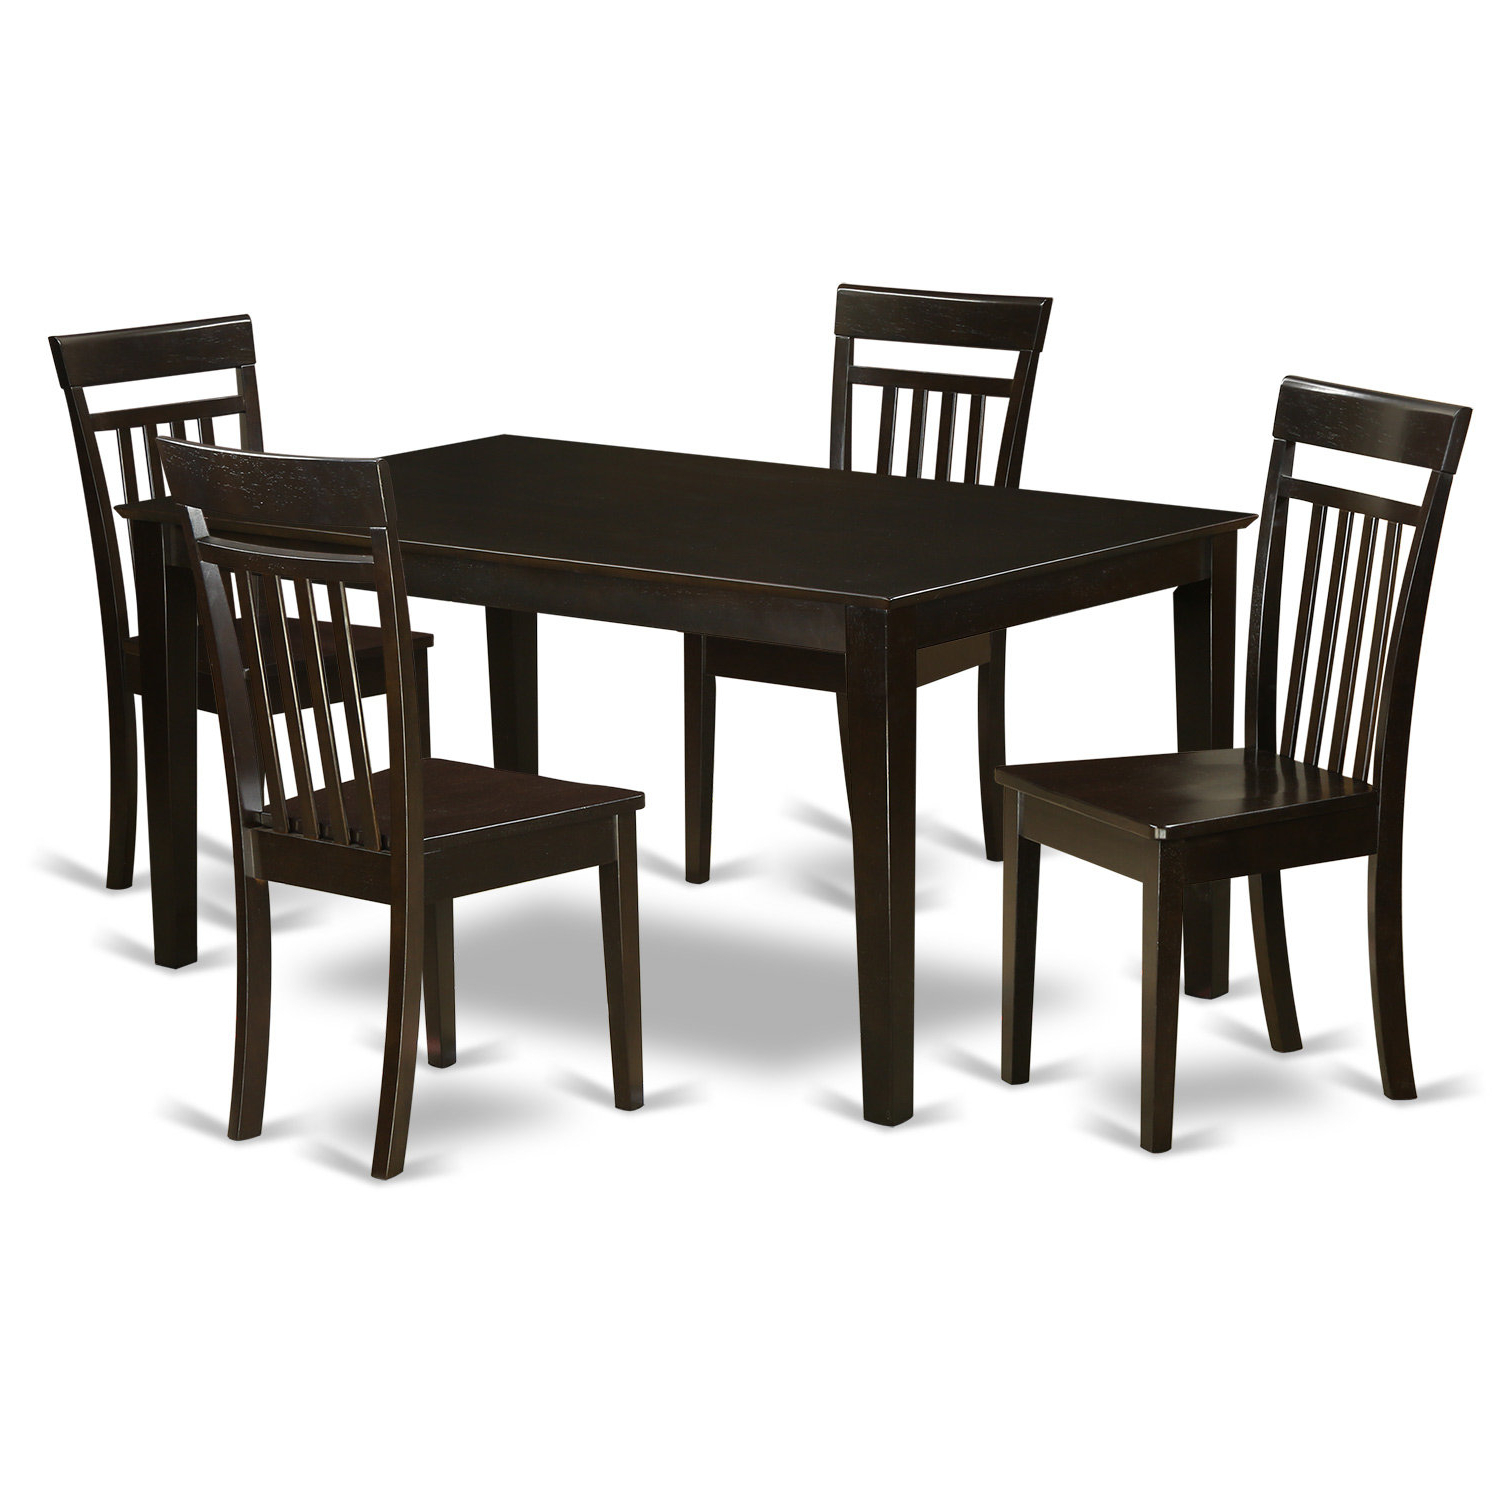 Smyrna 3 Piece Dining Sets Throughout Famous Smyrna 5 Piece Dining Set (View 15 of 20)